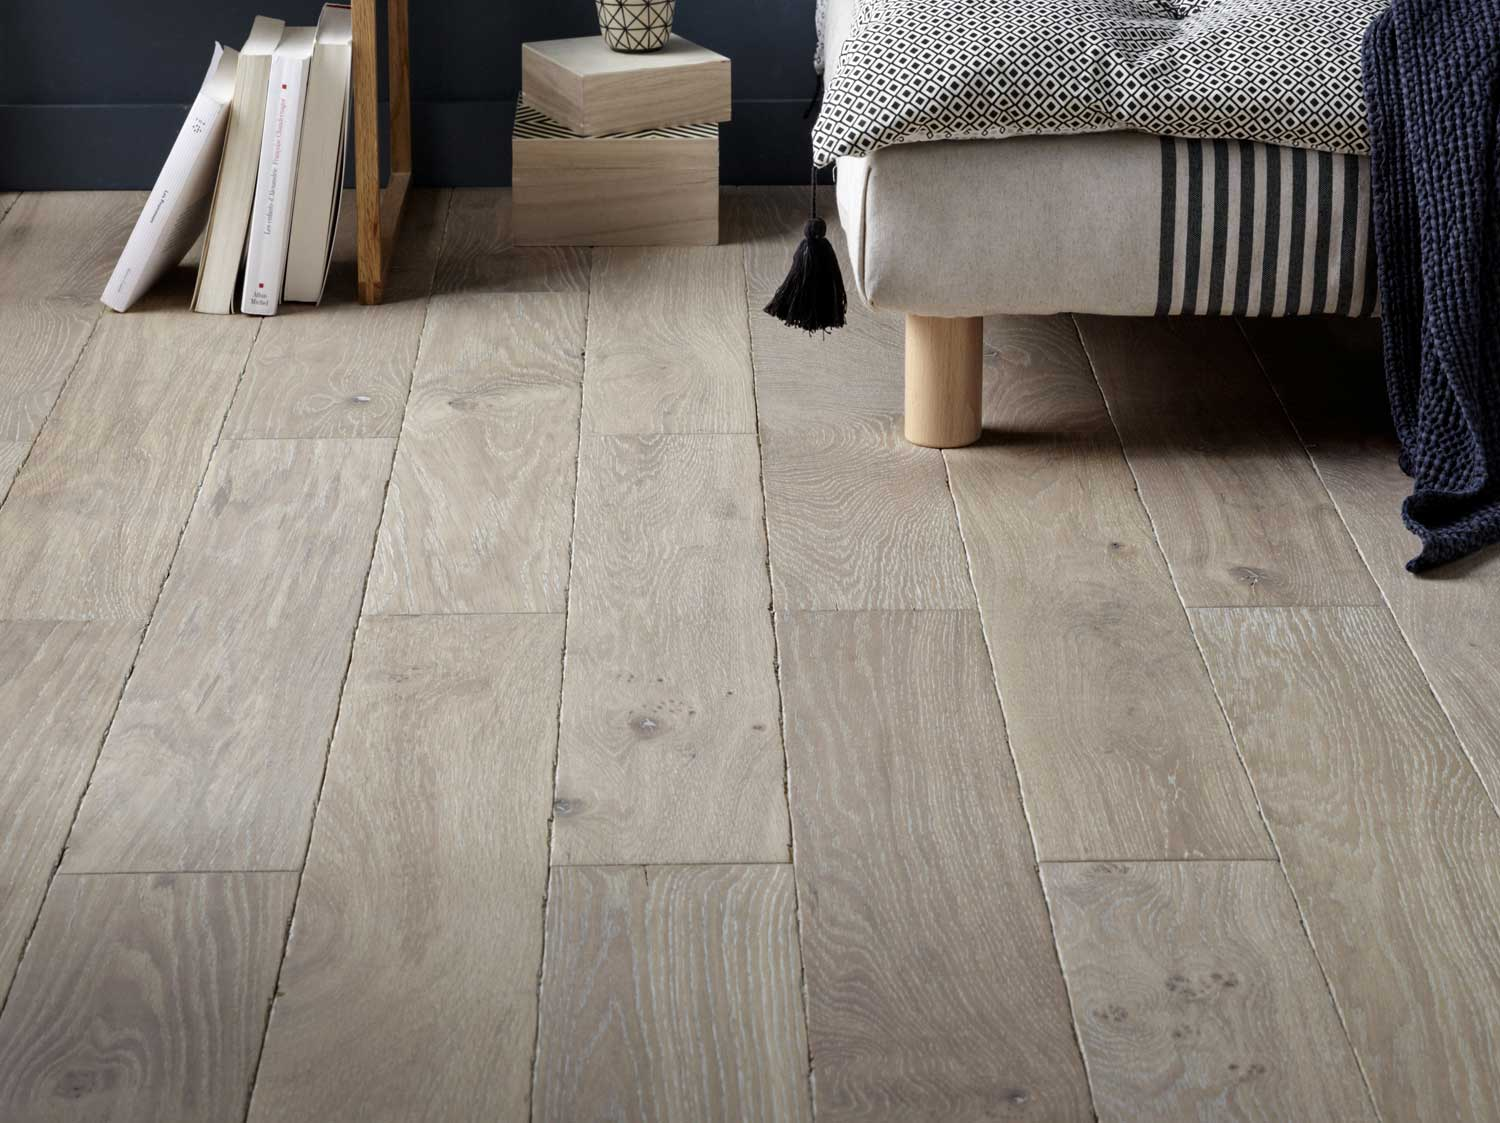 coller parquet massif sur carrelage great peuton poser du carrelage sur du parquet with coller. Black Bedroom Furniture Sets. Home Design Ideas